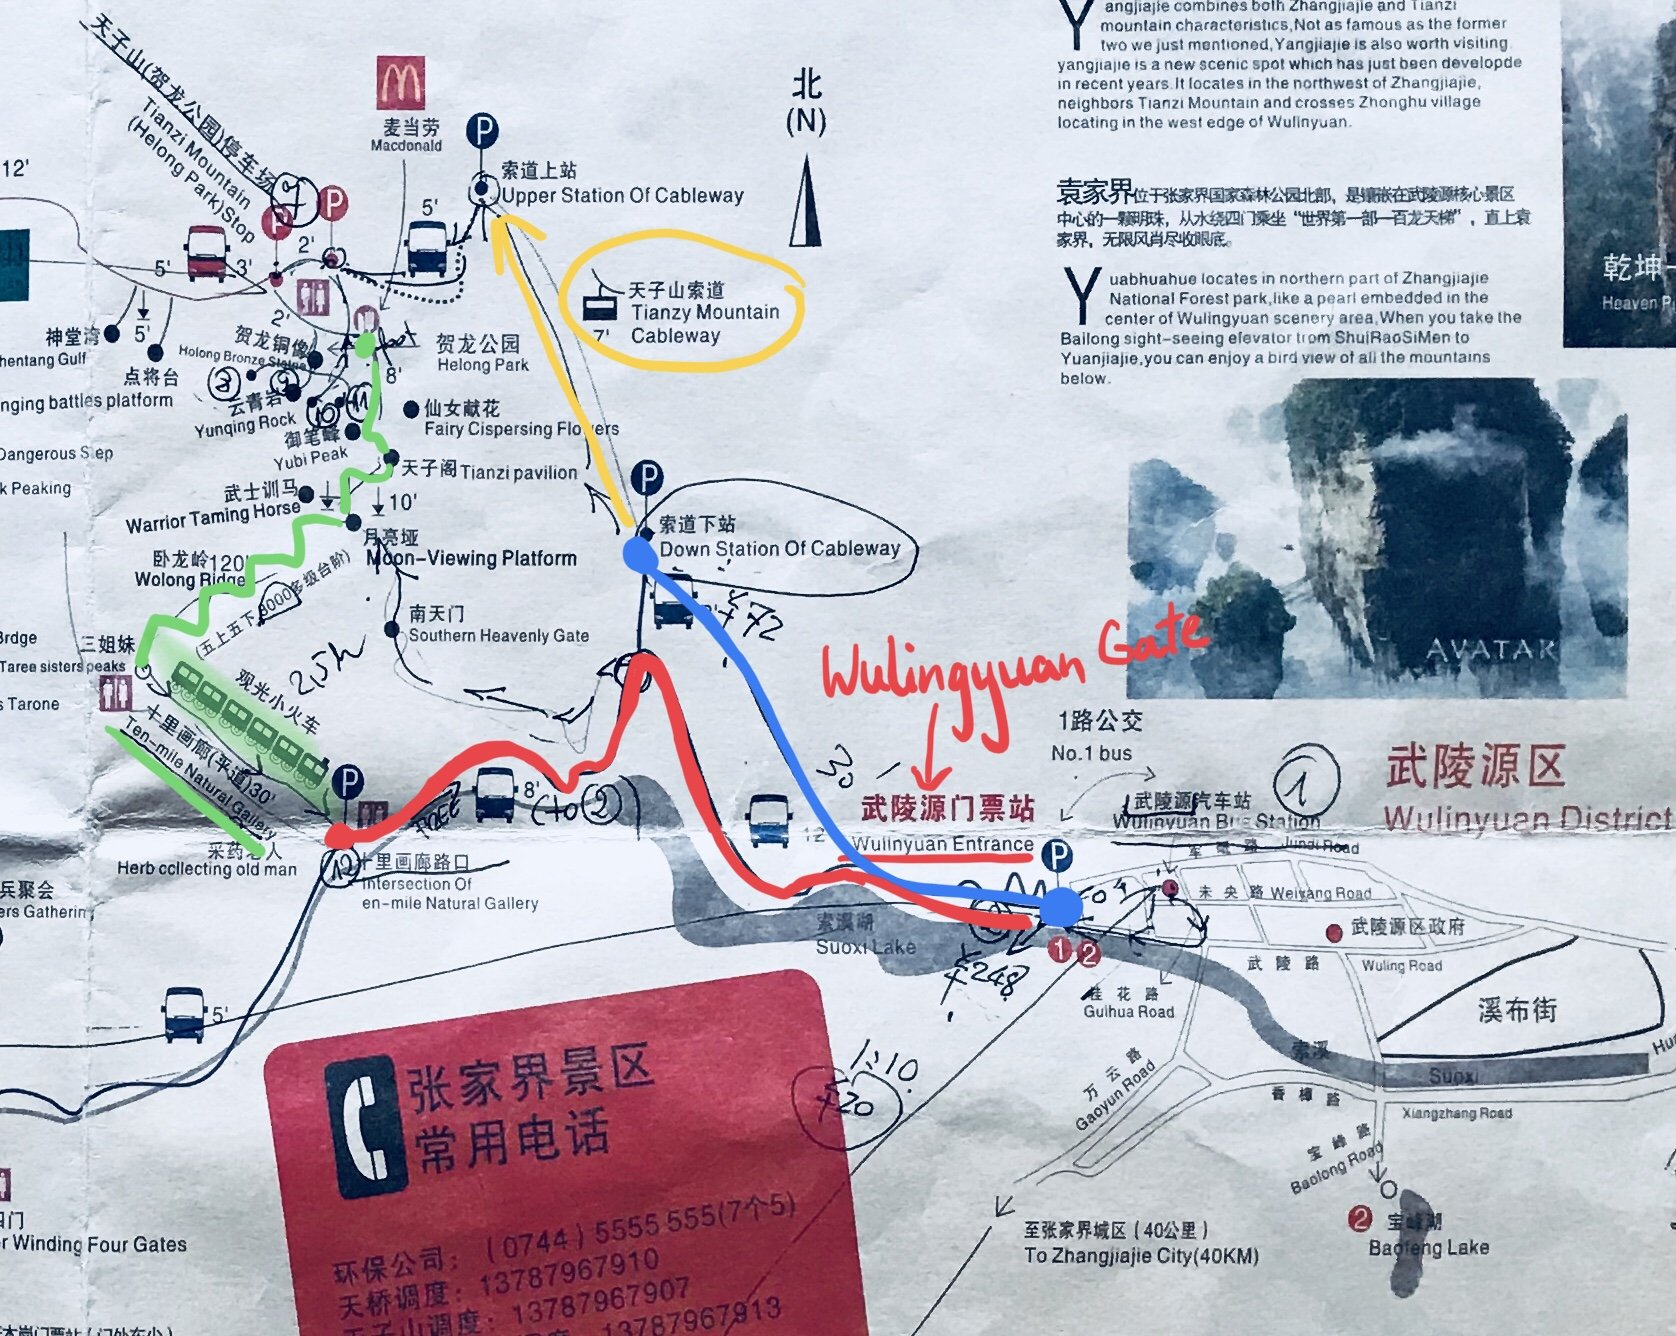 First Part of a map of Zhangjiajie National Park